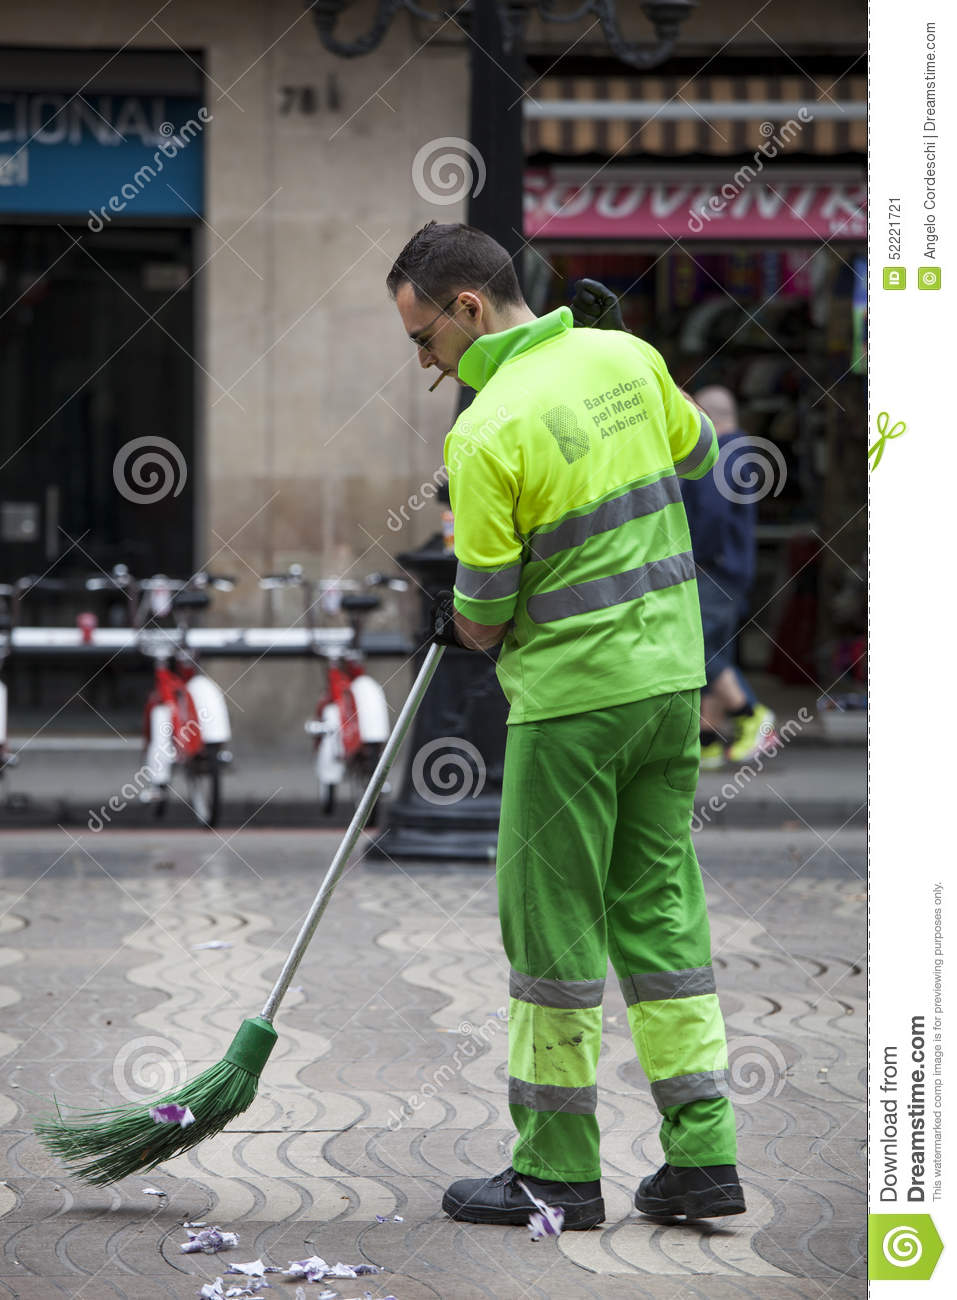 Garbage Man Sweeping The Road Barcelona Spain Editorial Photo  Image 52221721